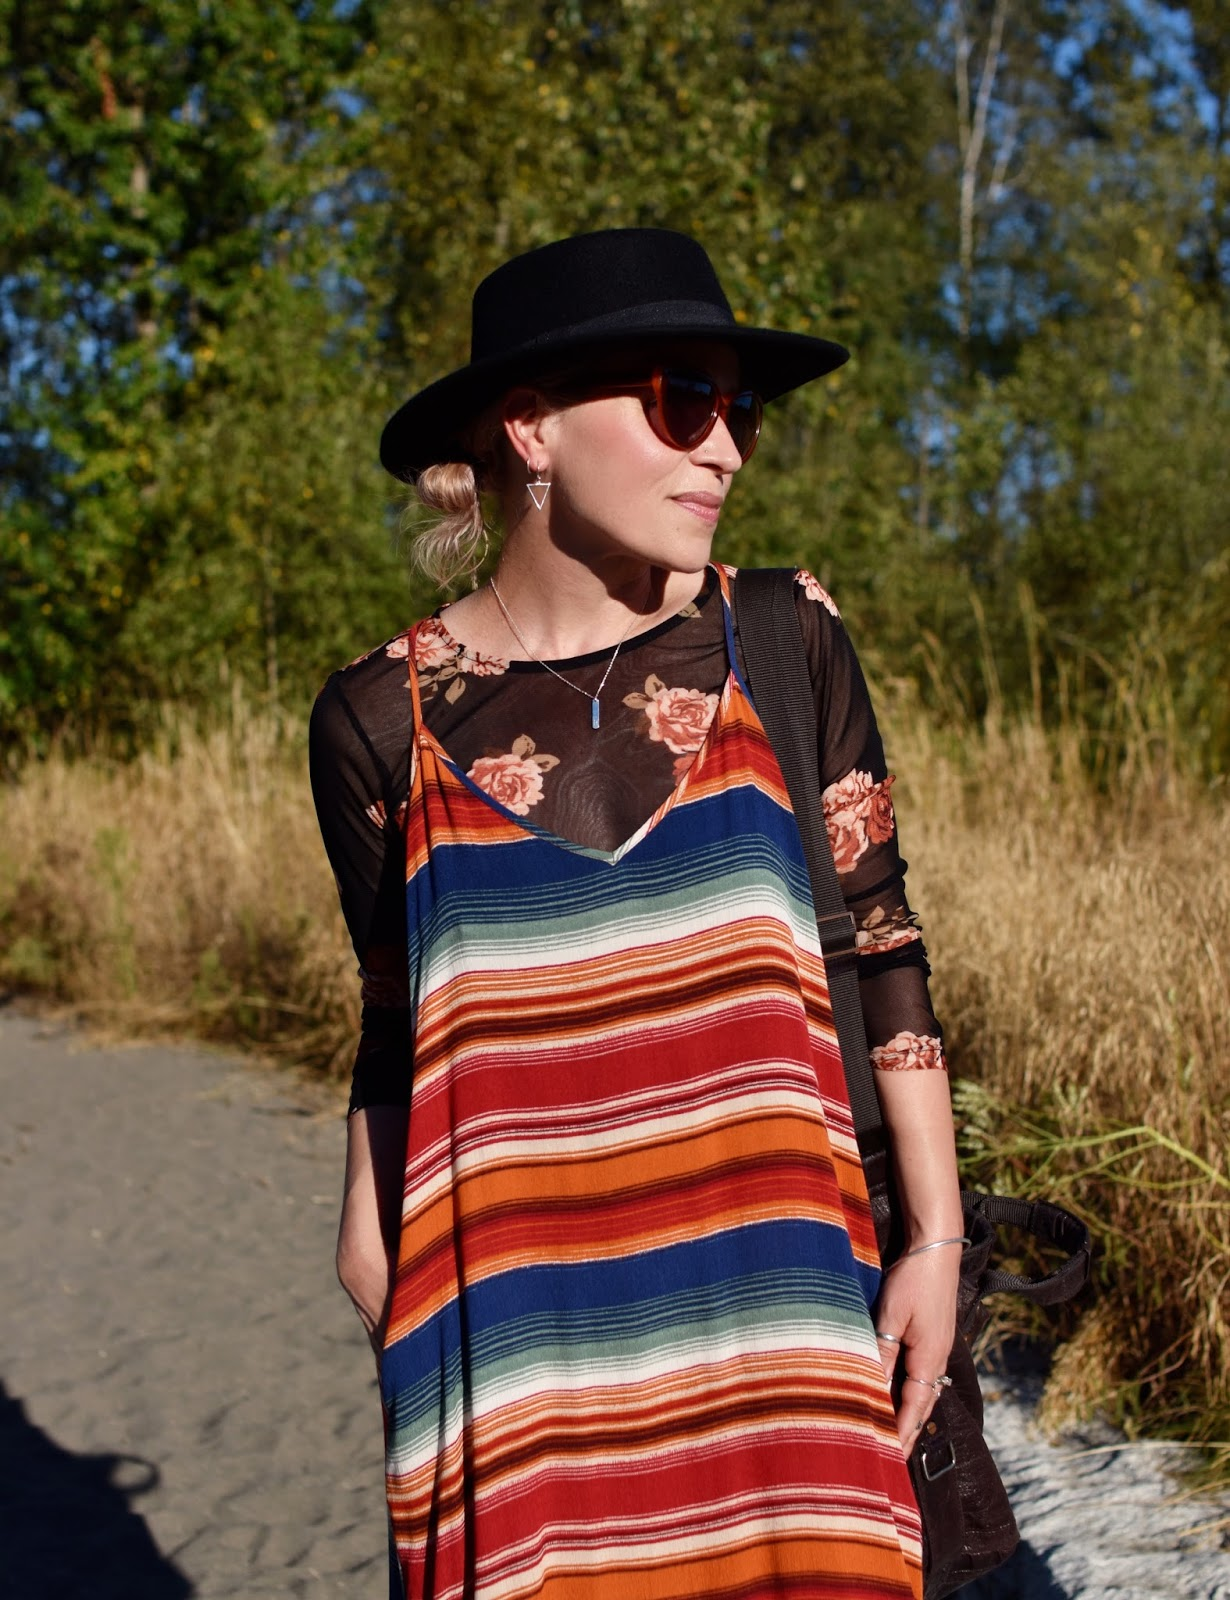 Monika Faulkner outfit inspiration - sheer black floral top, red striped trapeze dress, flat-top fedora, sunglasses